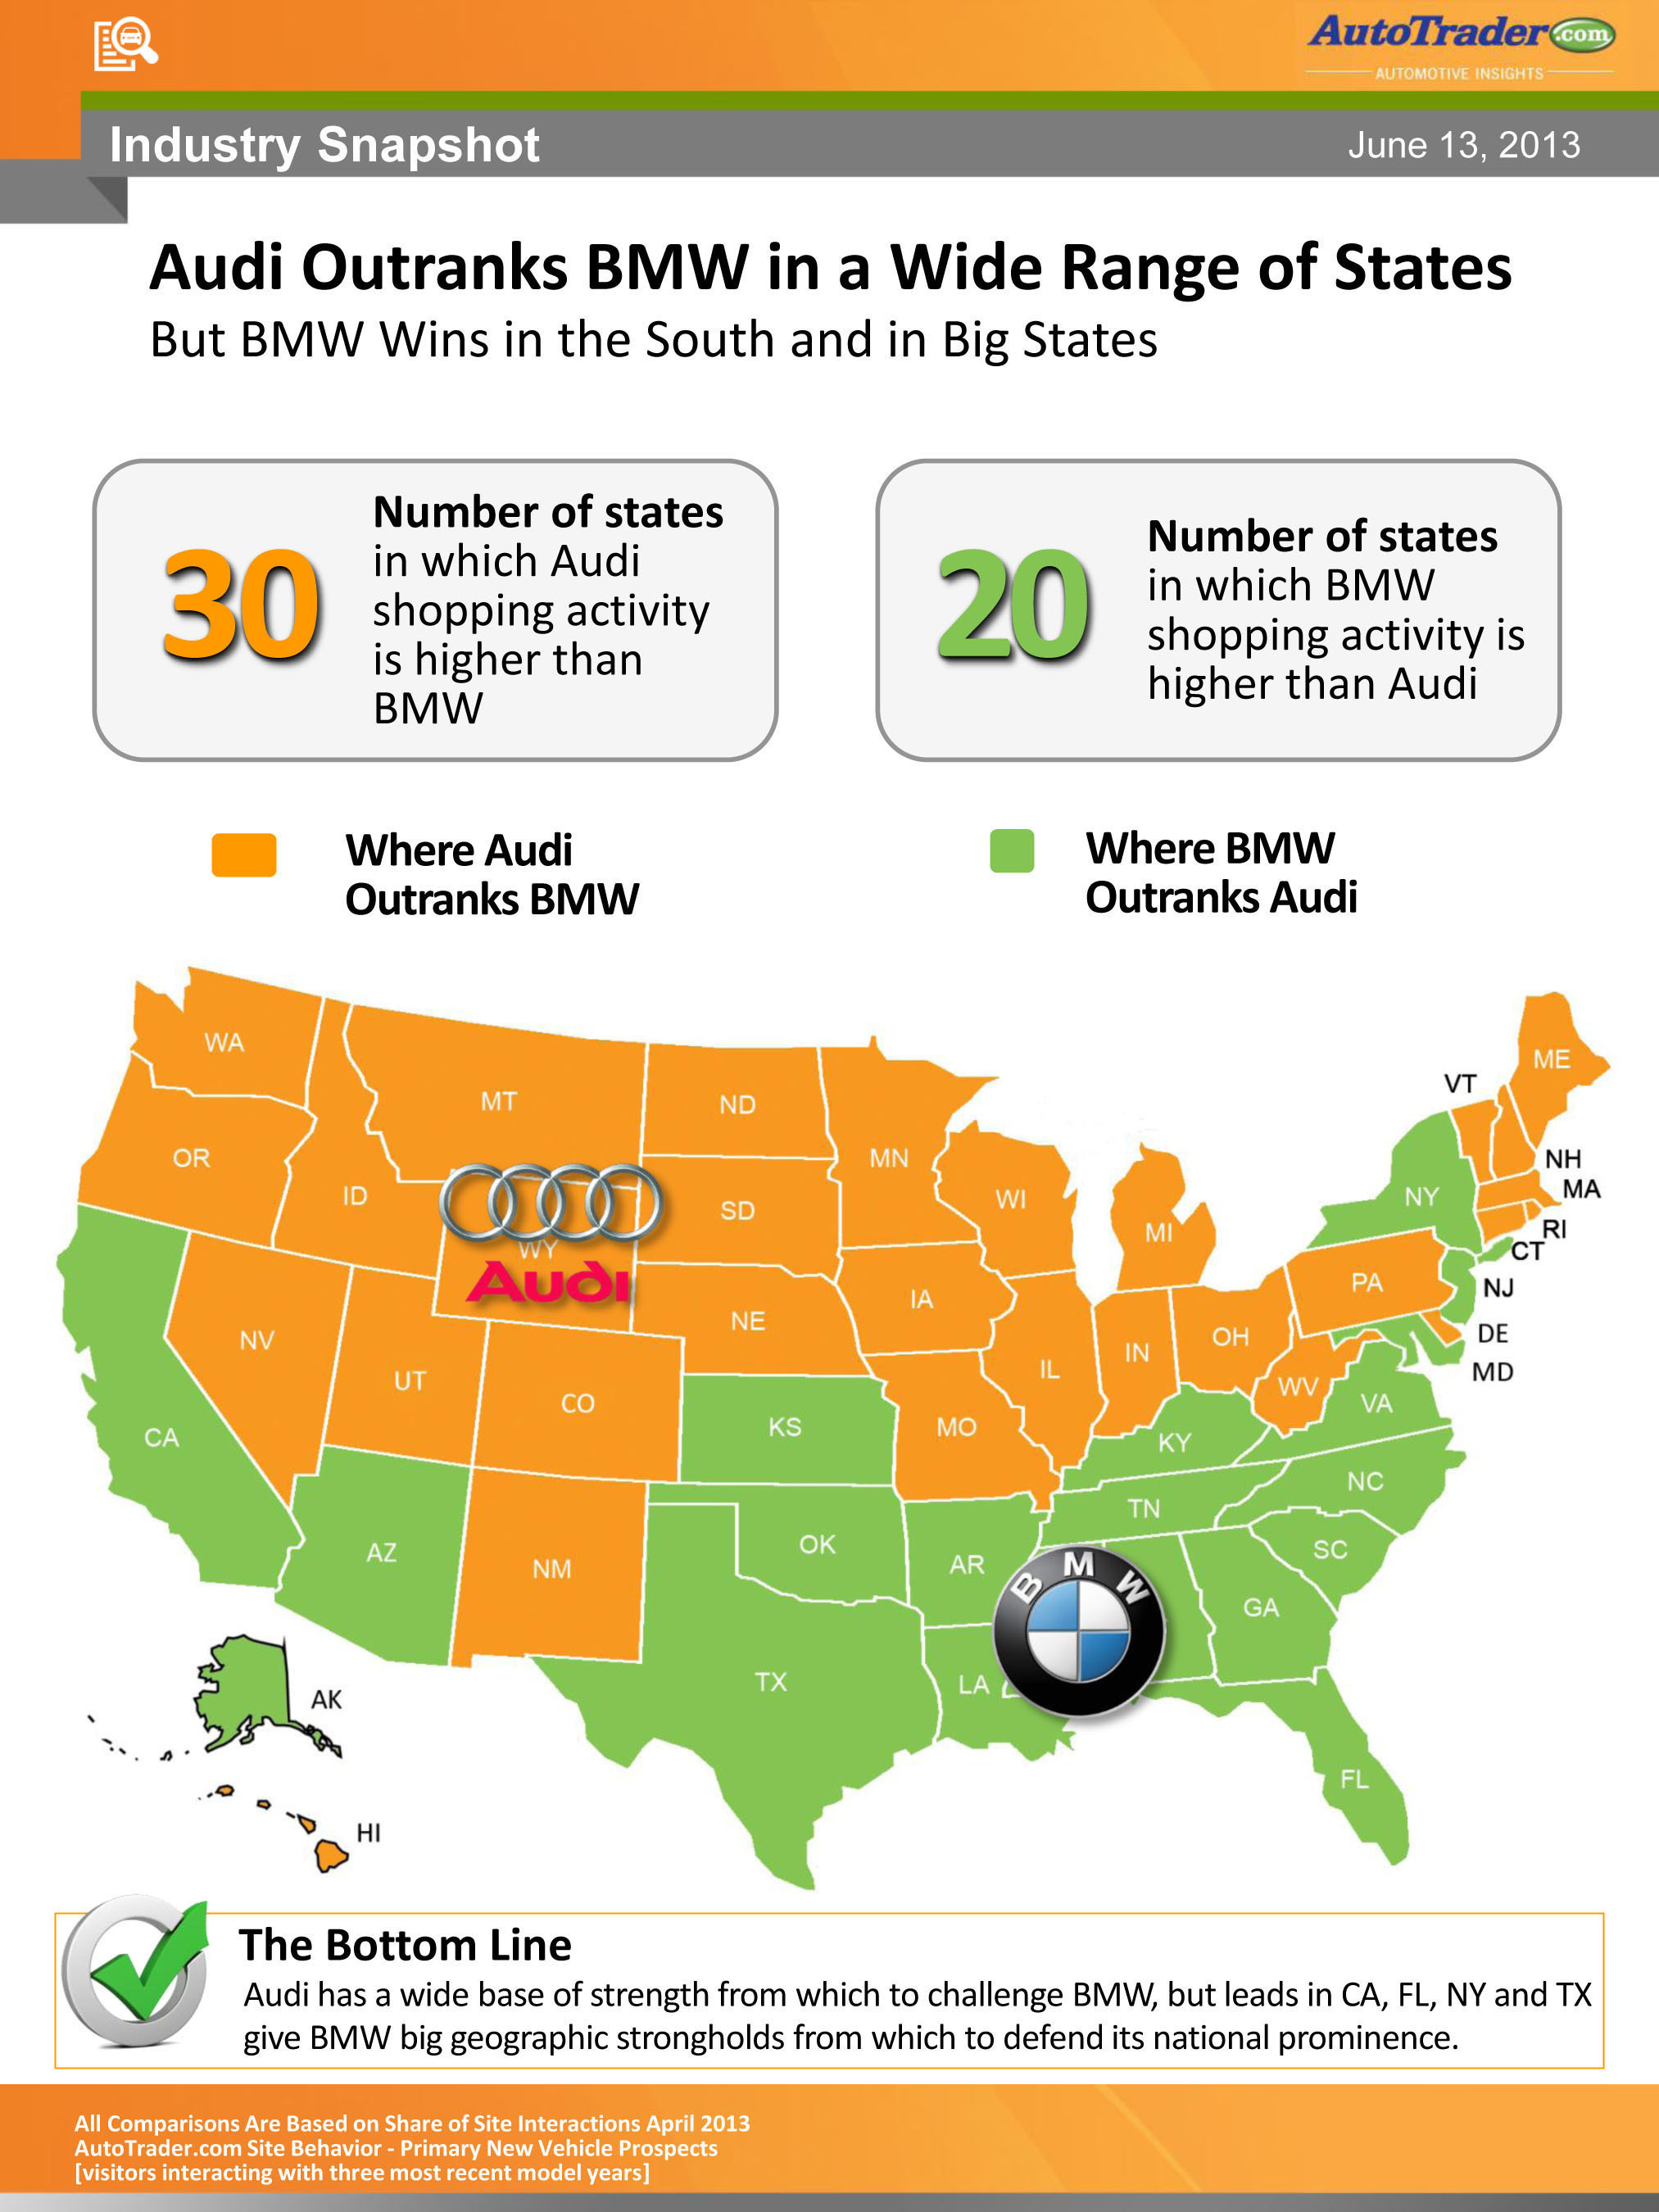 Audi Outranks BMW In Shopper Interest In 30 States Across The U.S.; BMW Leads In Big States. ...